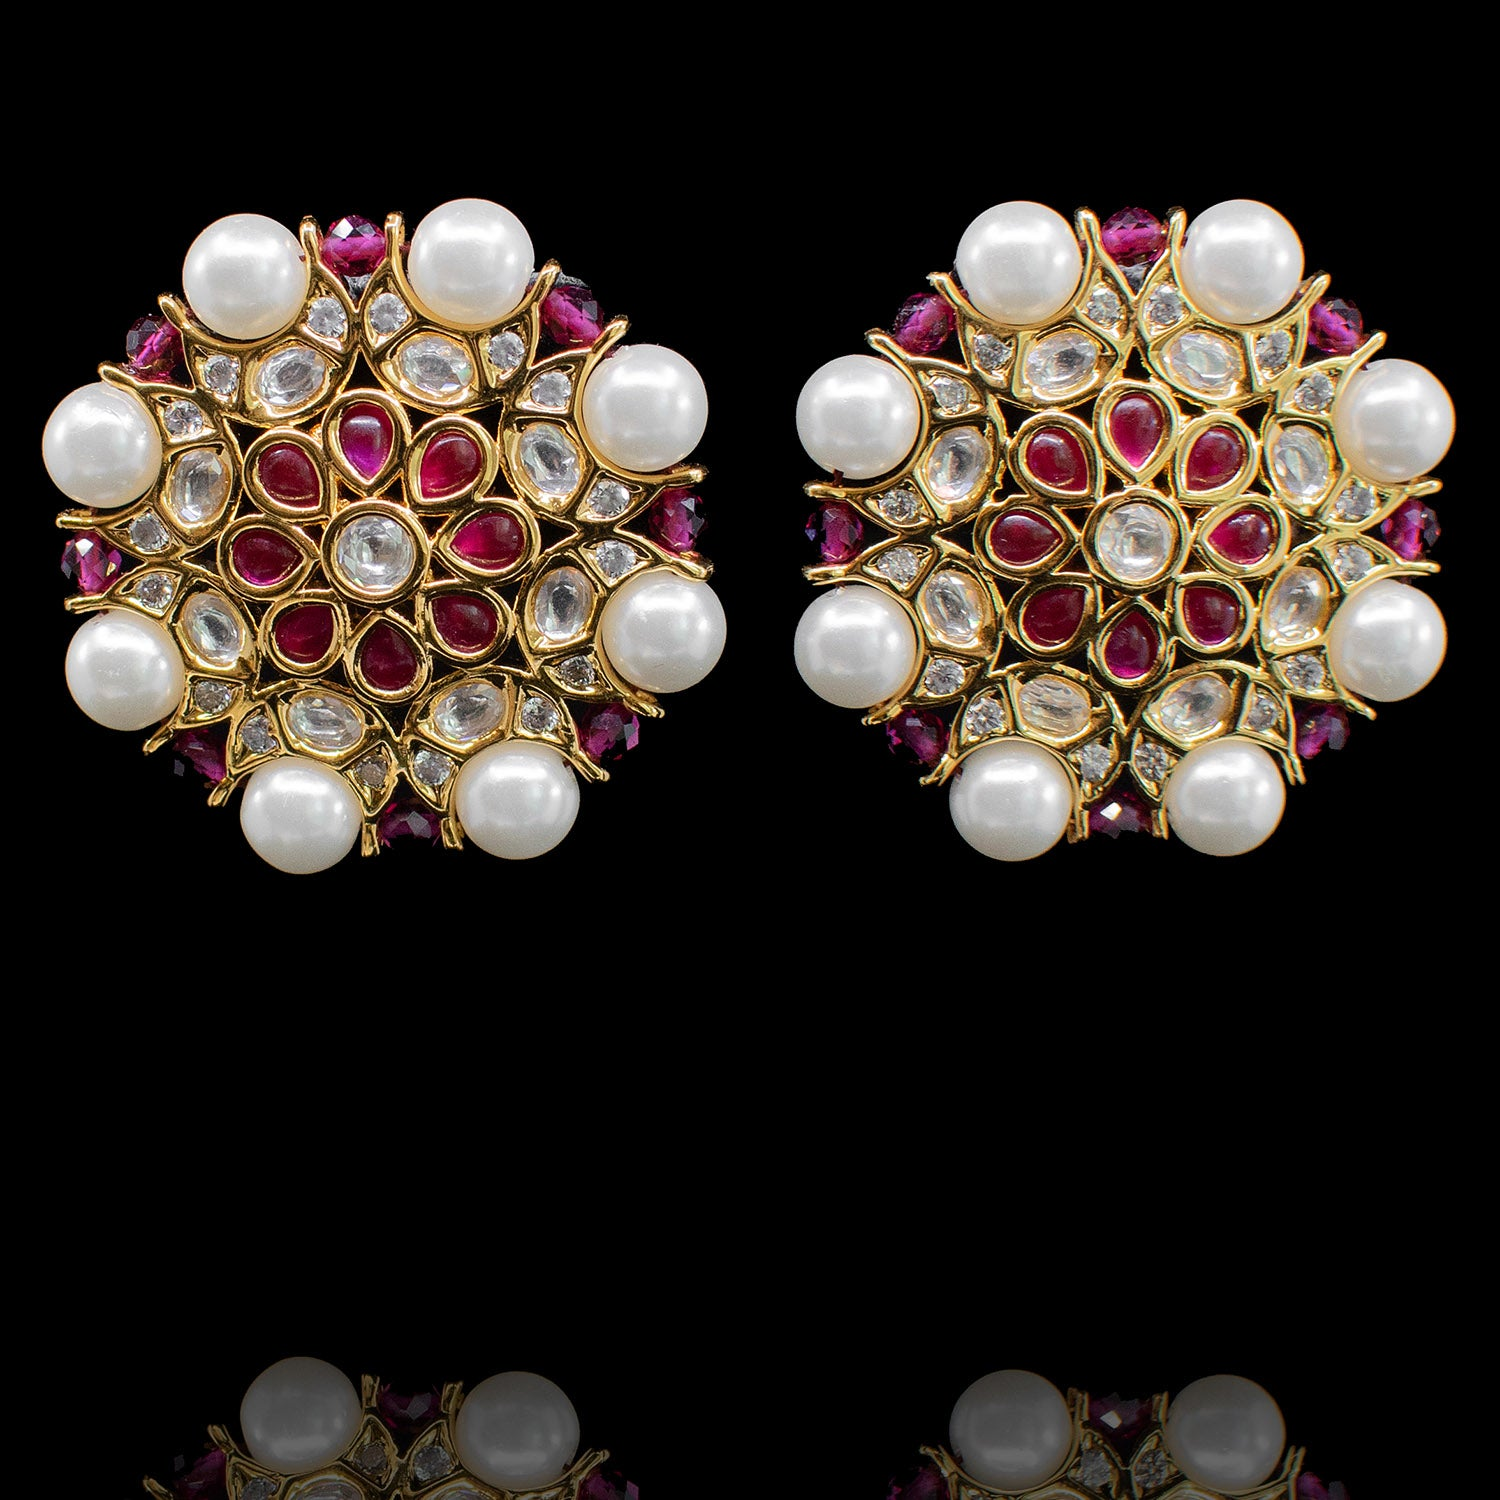 Hina Earrings - Available in 3 Colors